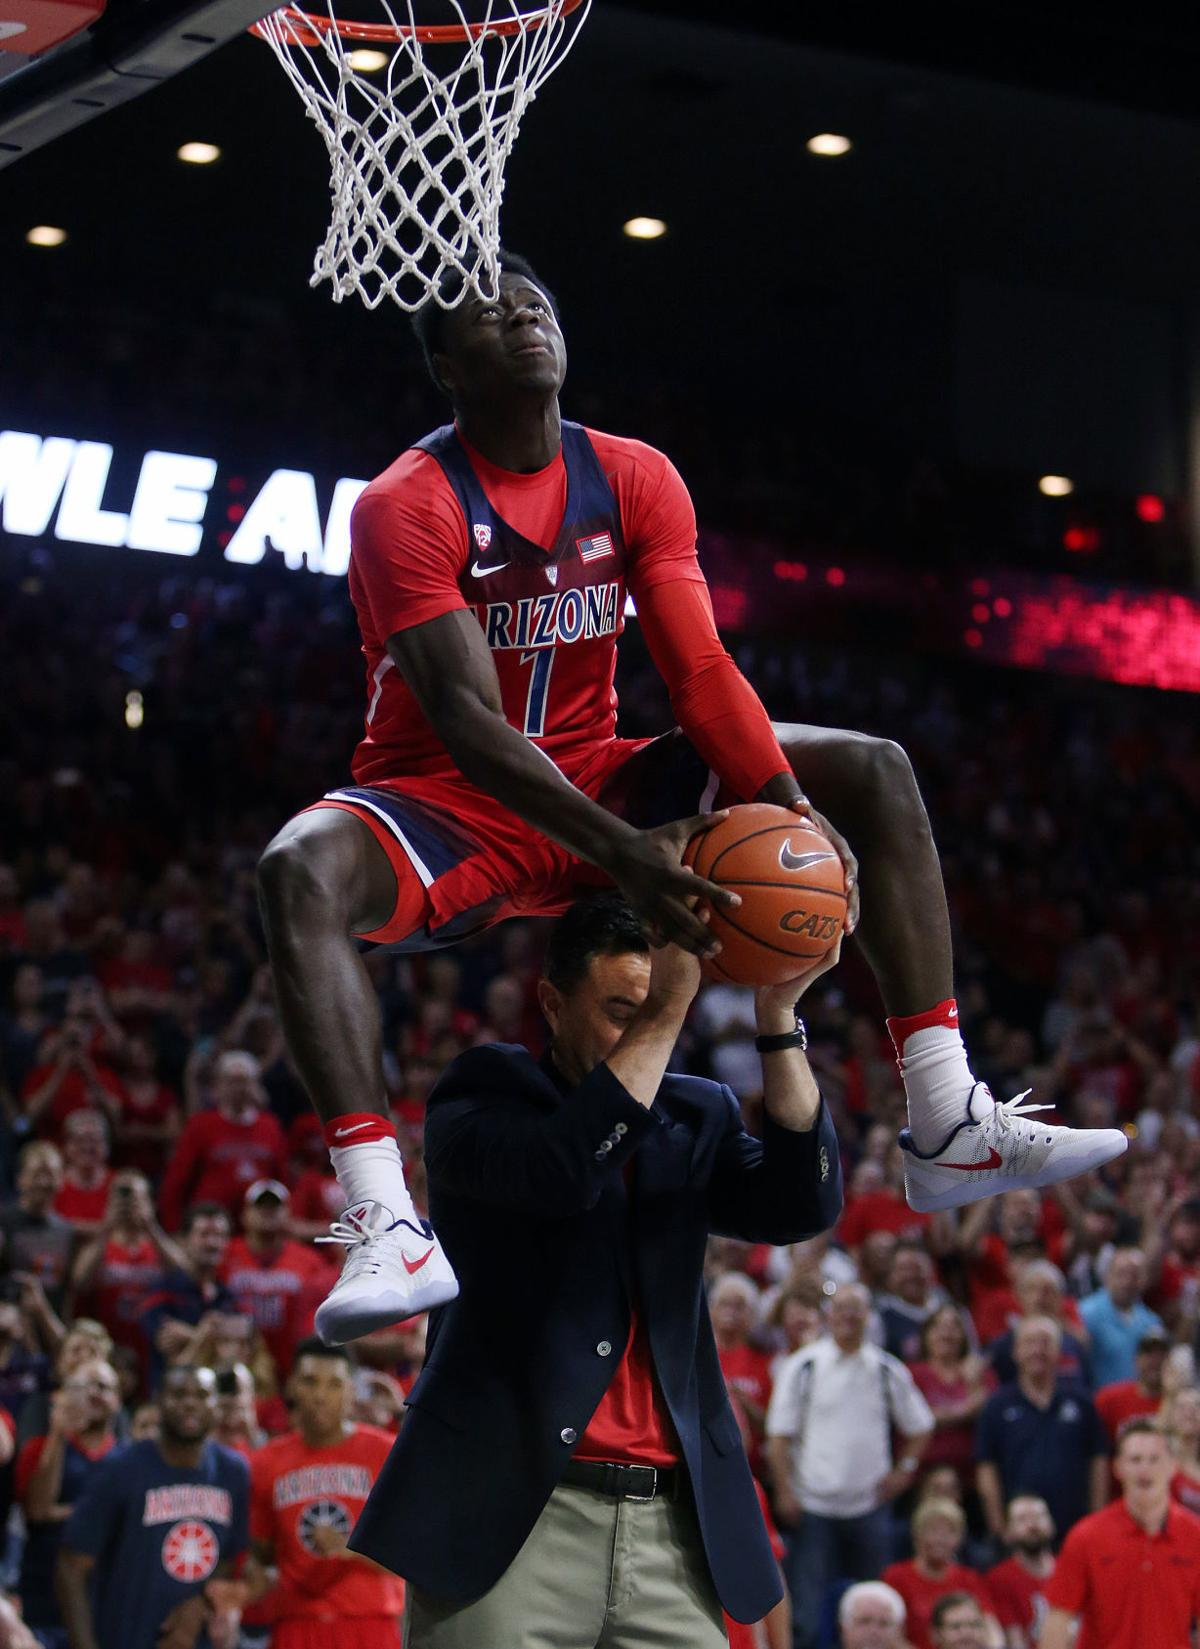 Arizona Wildcats basketball Red/Blue scrimmage